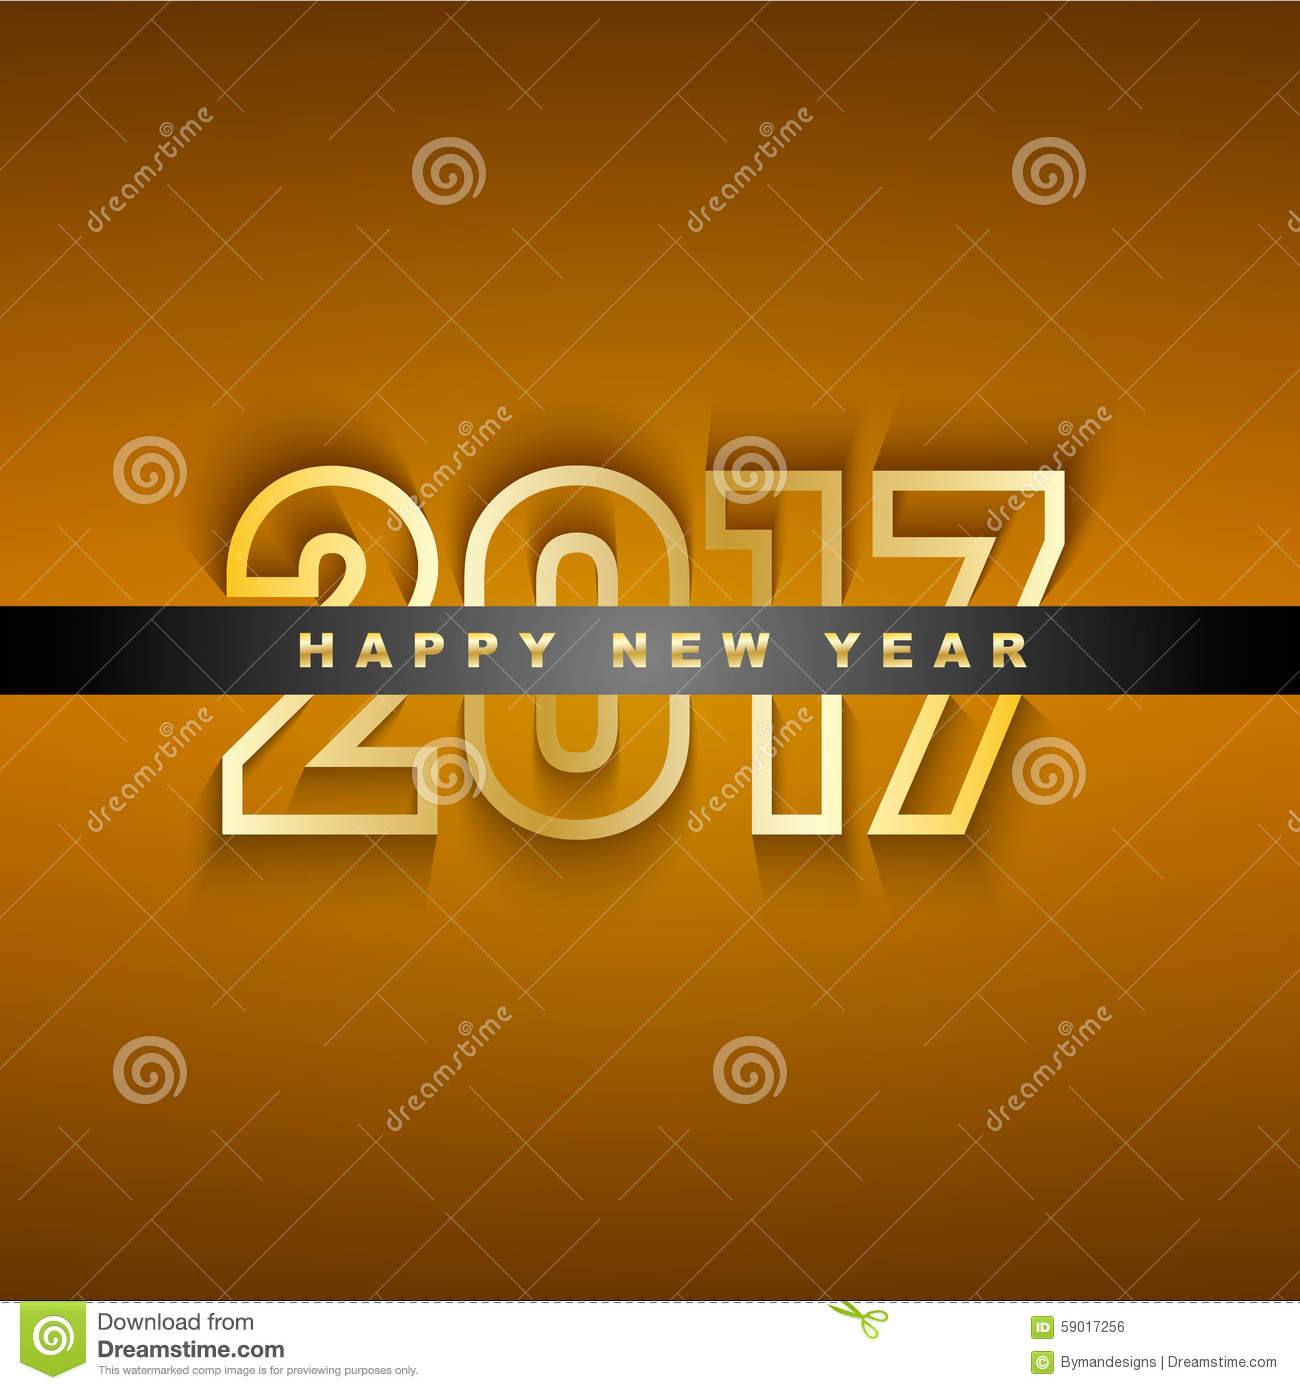 Golden 2017 New Year Greeting Card Stock Vector Illustration Of